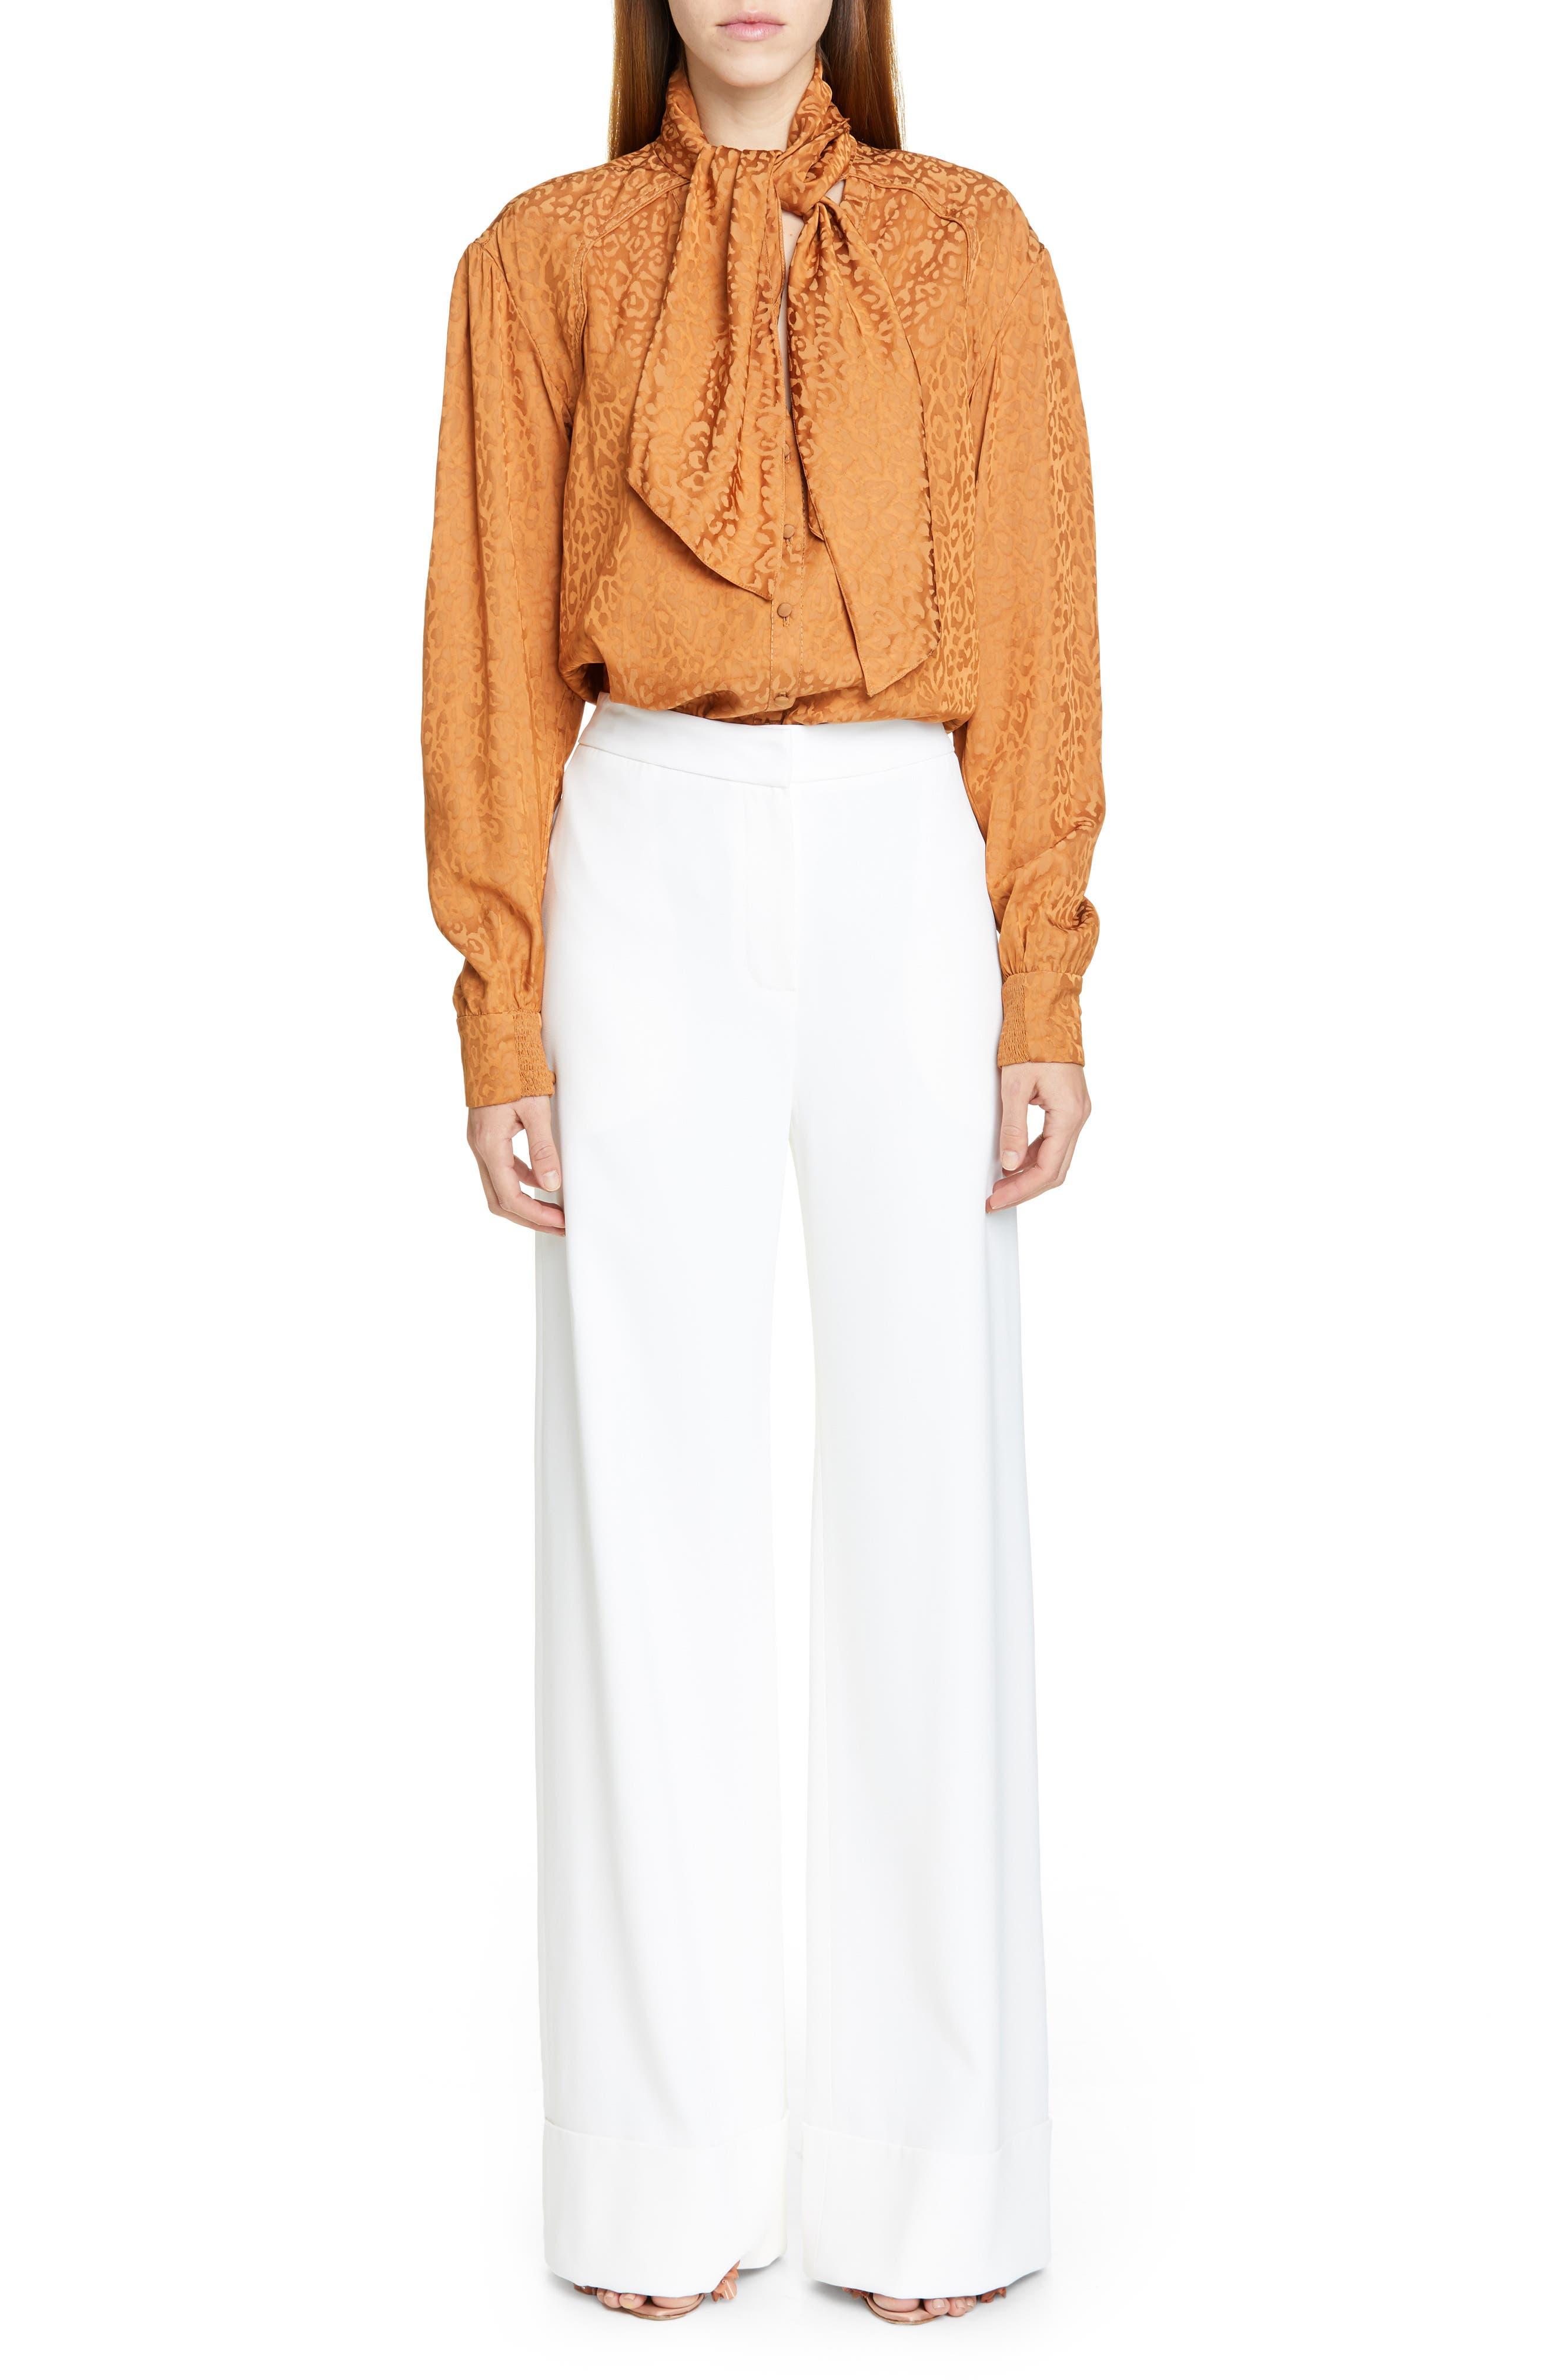 BRANDON MAXWELL, Wide Leg Cuff Pants, Alternate thumbnail 7, color, IVORY